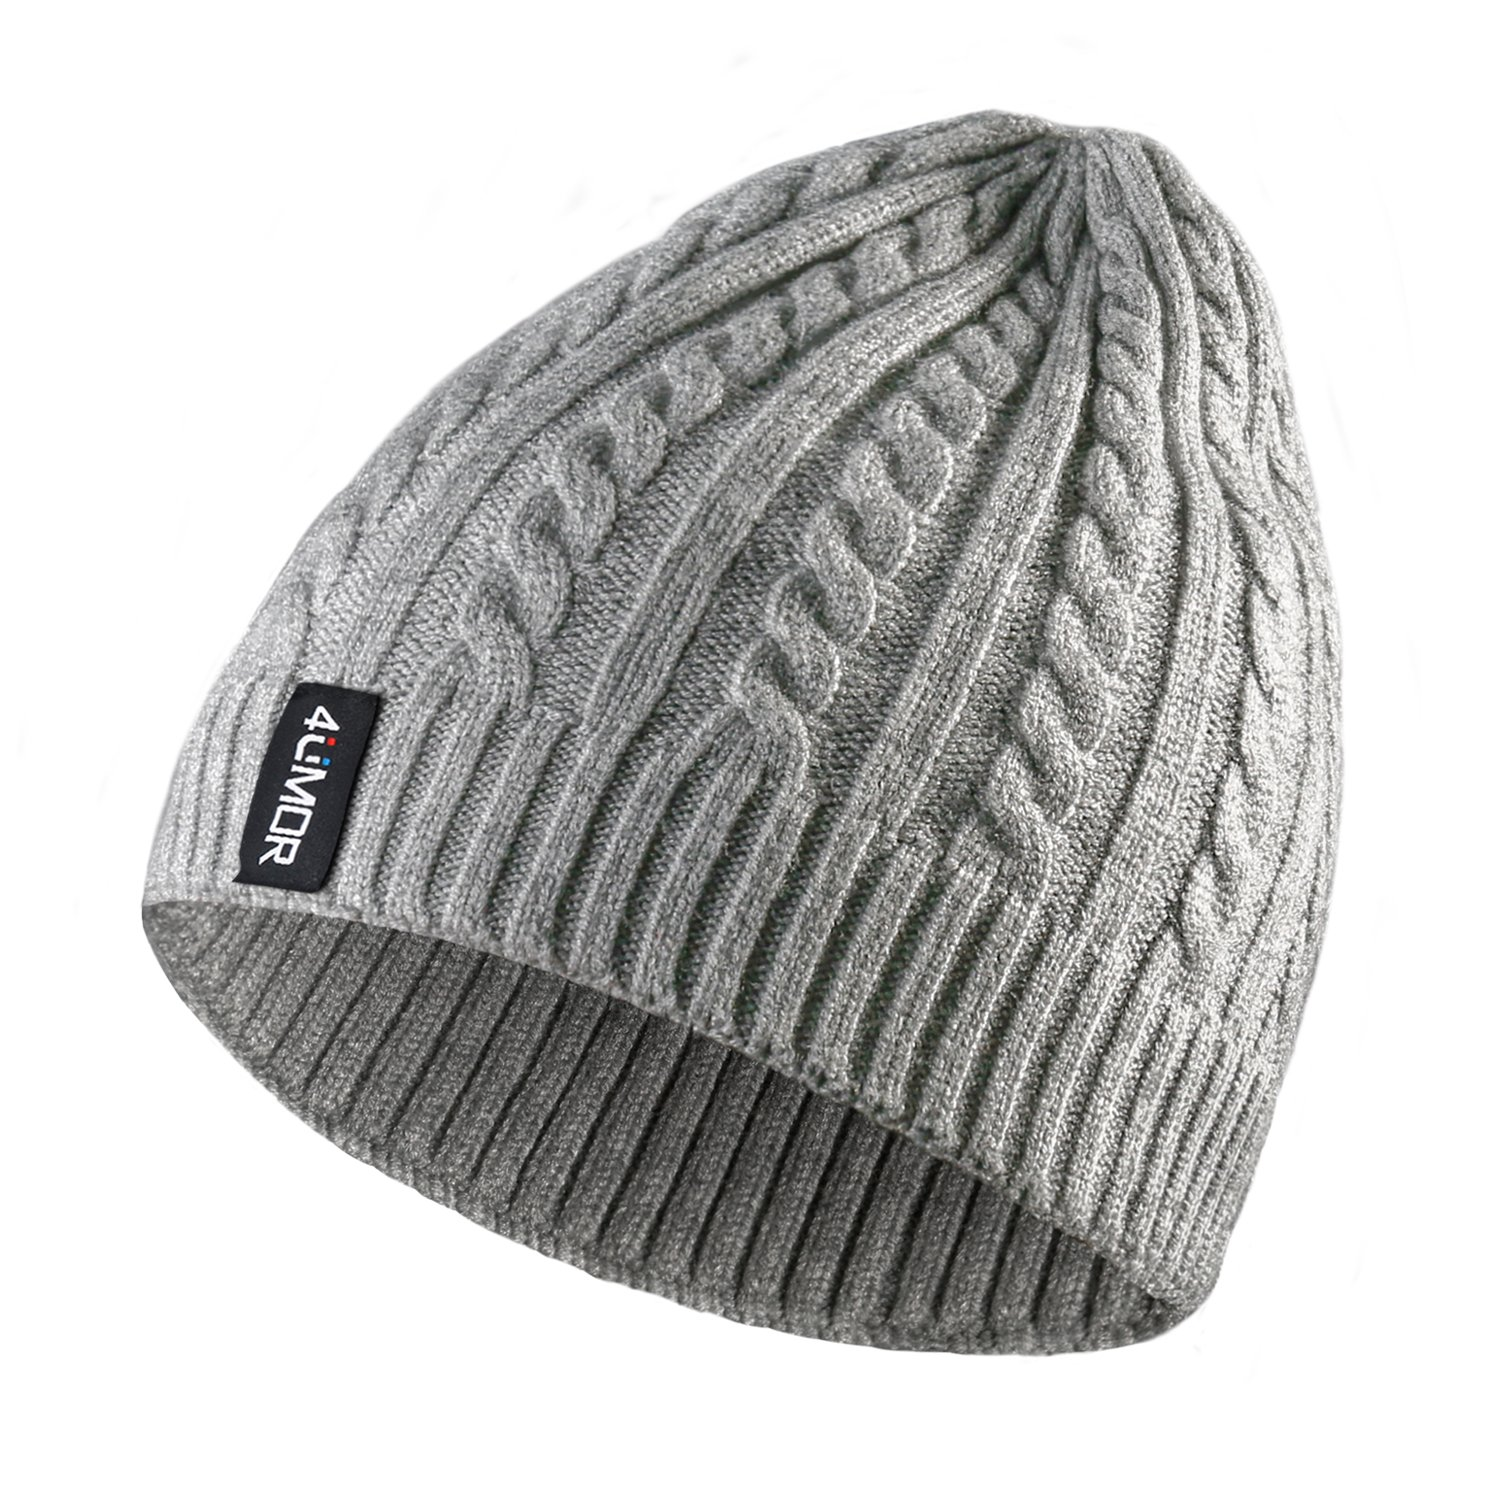 4UMOR Beanie Knit Hats Double-Deck Winter Warm Outdoor, For Travel/Hiking/Camping/Fishing/Cycling/Ski, Fits Youth/Couple, Black/Gray, One Size, Unisex Unisex (Black) FY10910008-UK